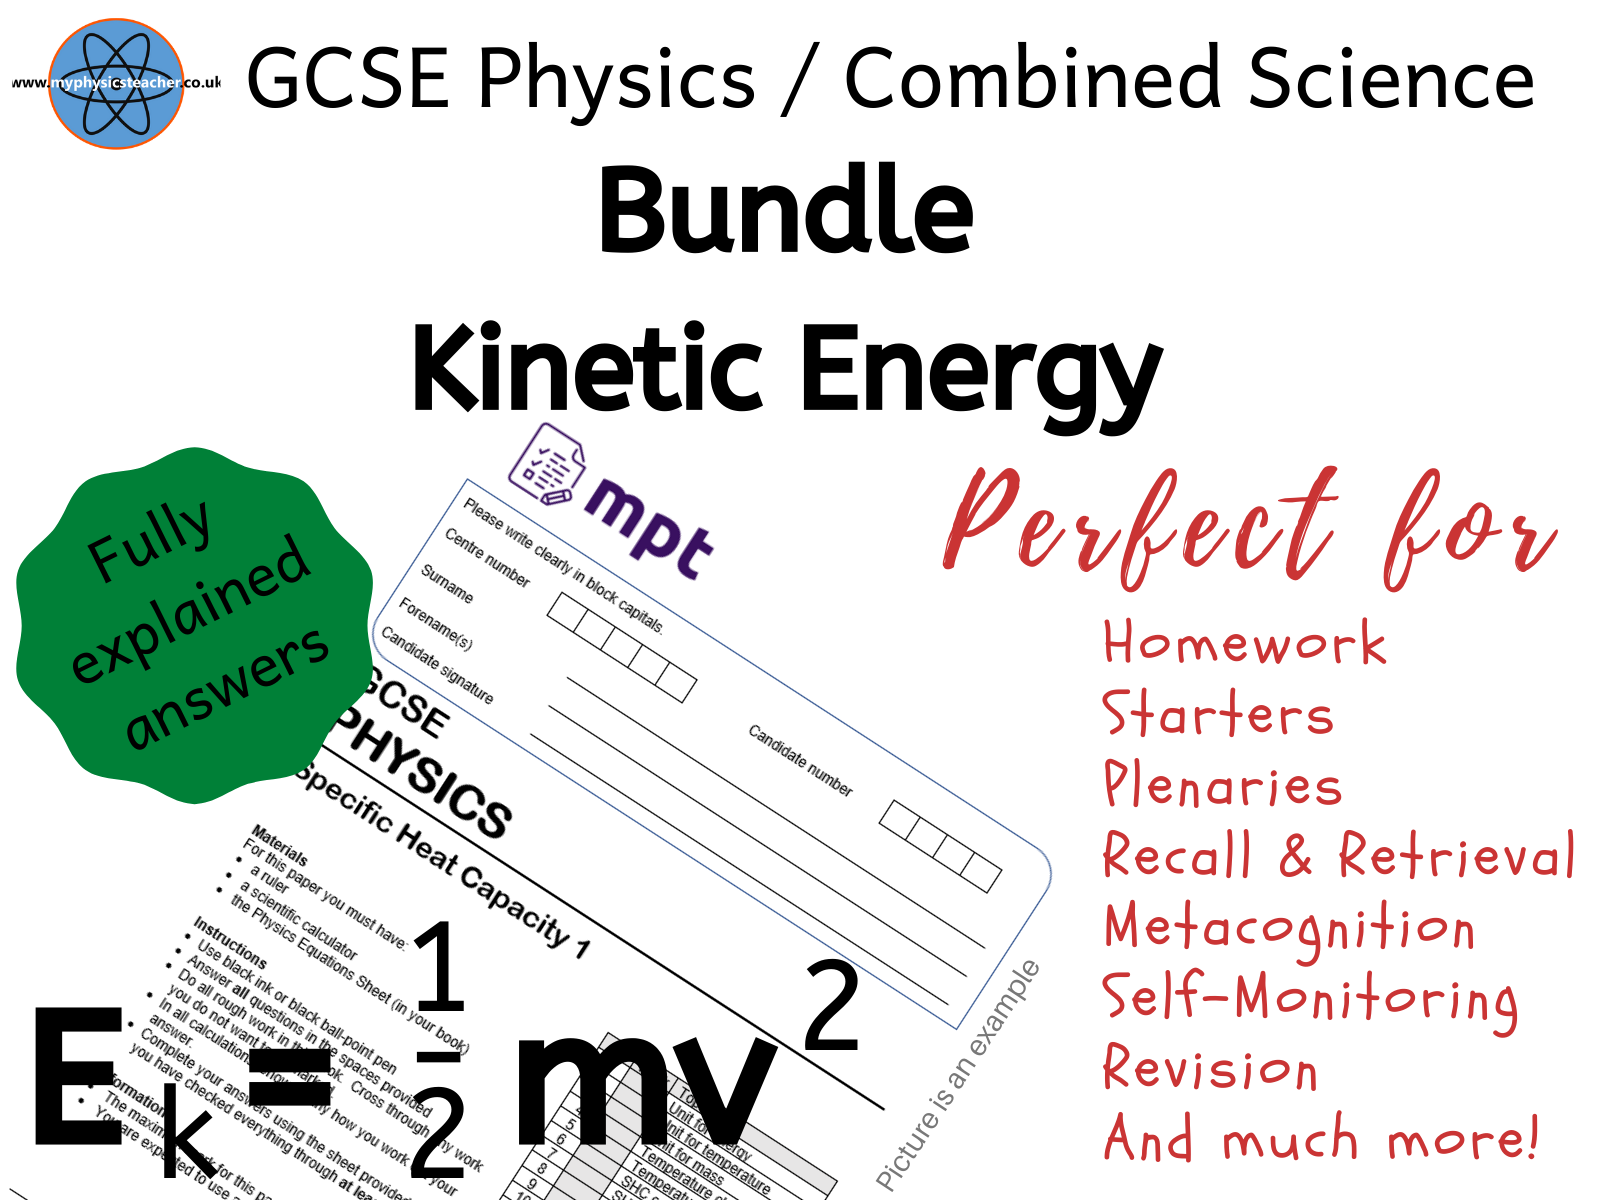 Kinetic Energy GCSE Bundle - scaffolded worksheet and multiple choice exam style questions with fully explained answers